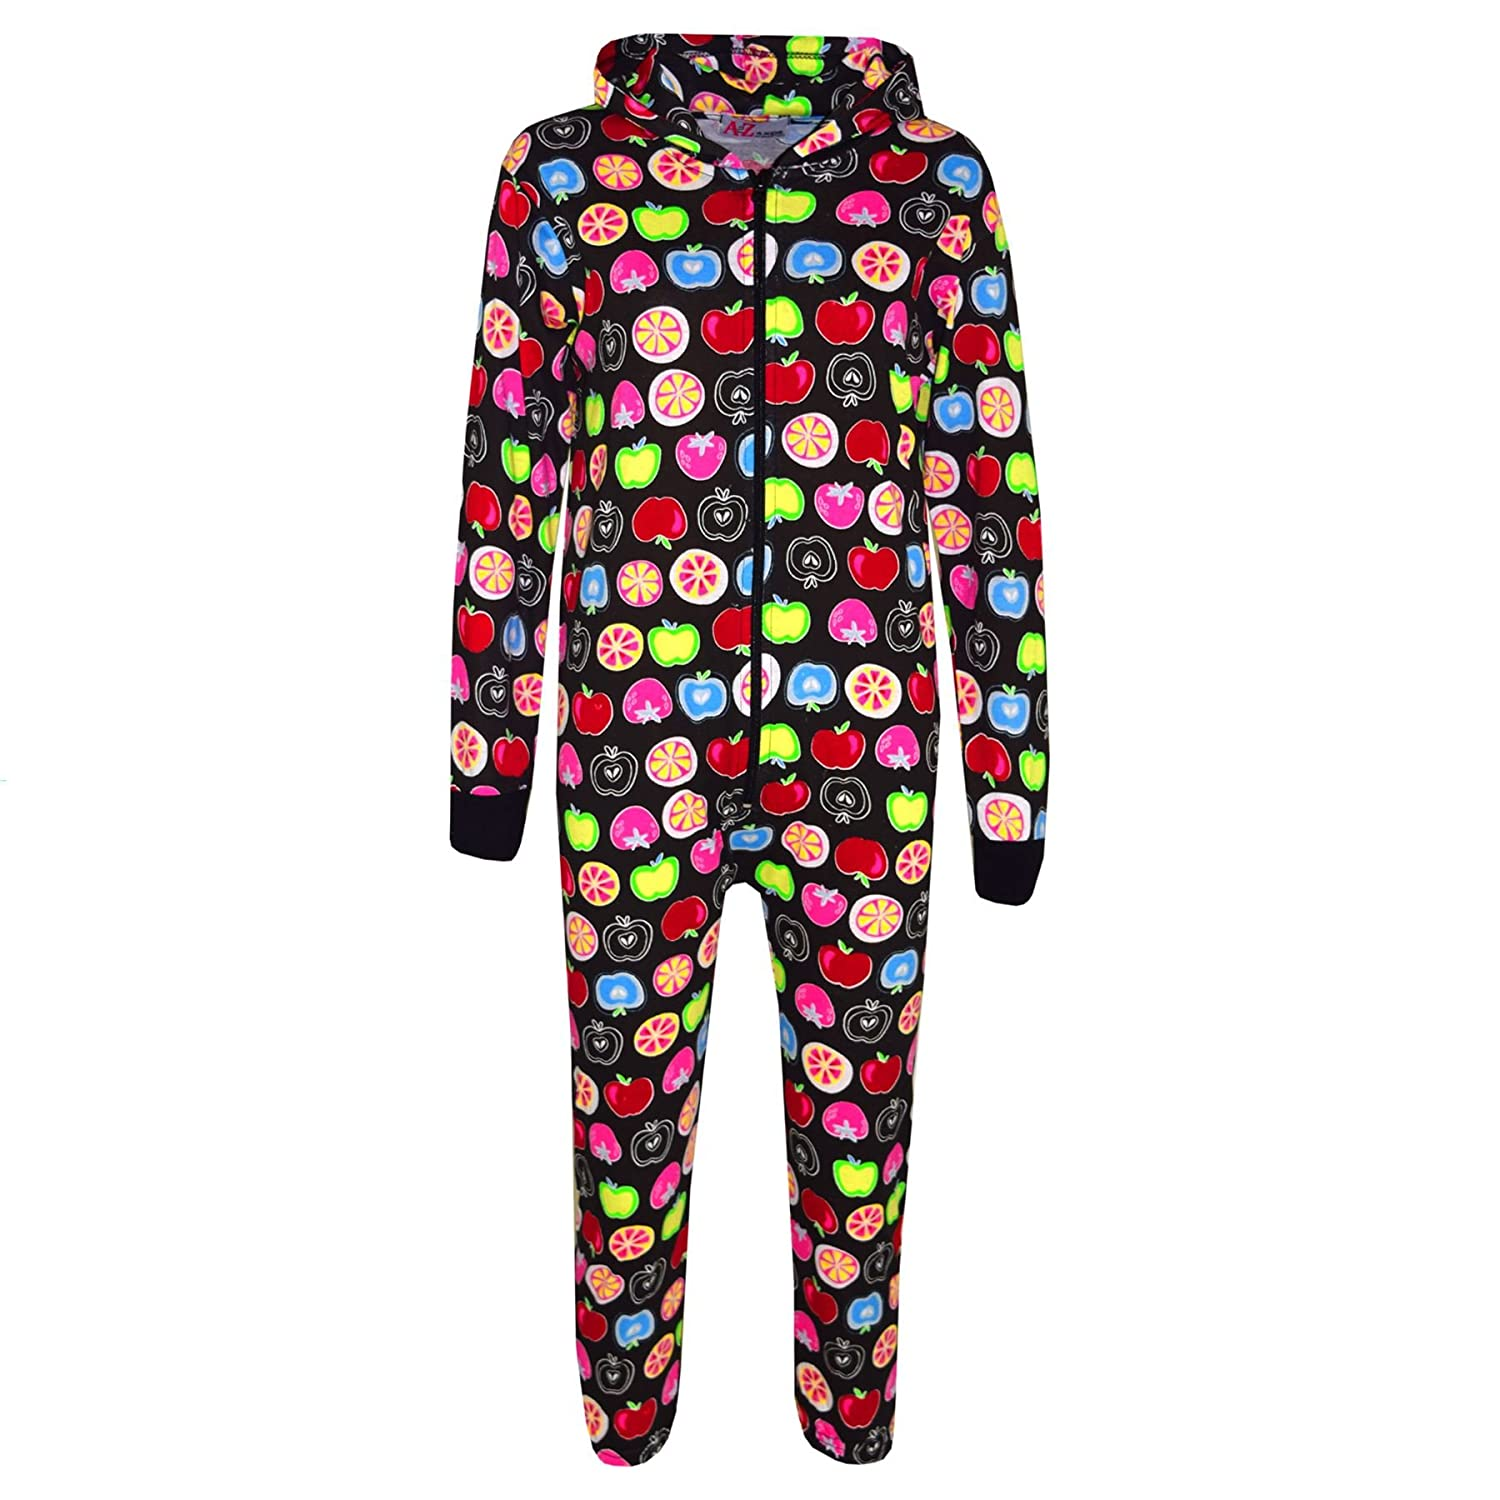 A2Z 4 Kids/® Kids Onesie Girls Boys Fruit Print Cotton Hooded A2Z Onesie One Piece All in One Jumpsuit New Age 2 3 4 5 6 7 8 9 10 11 12 13 Years